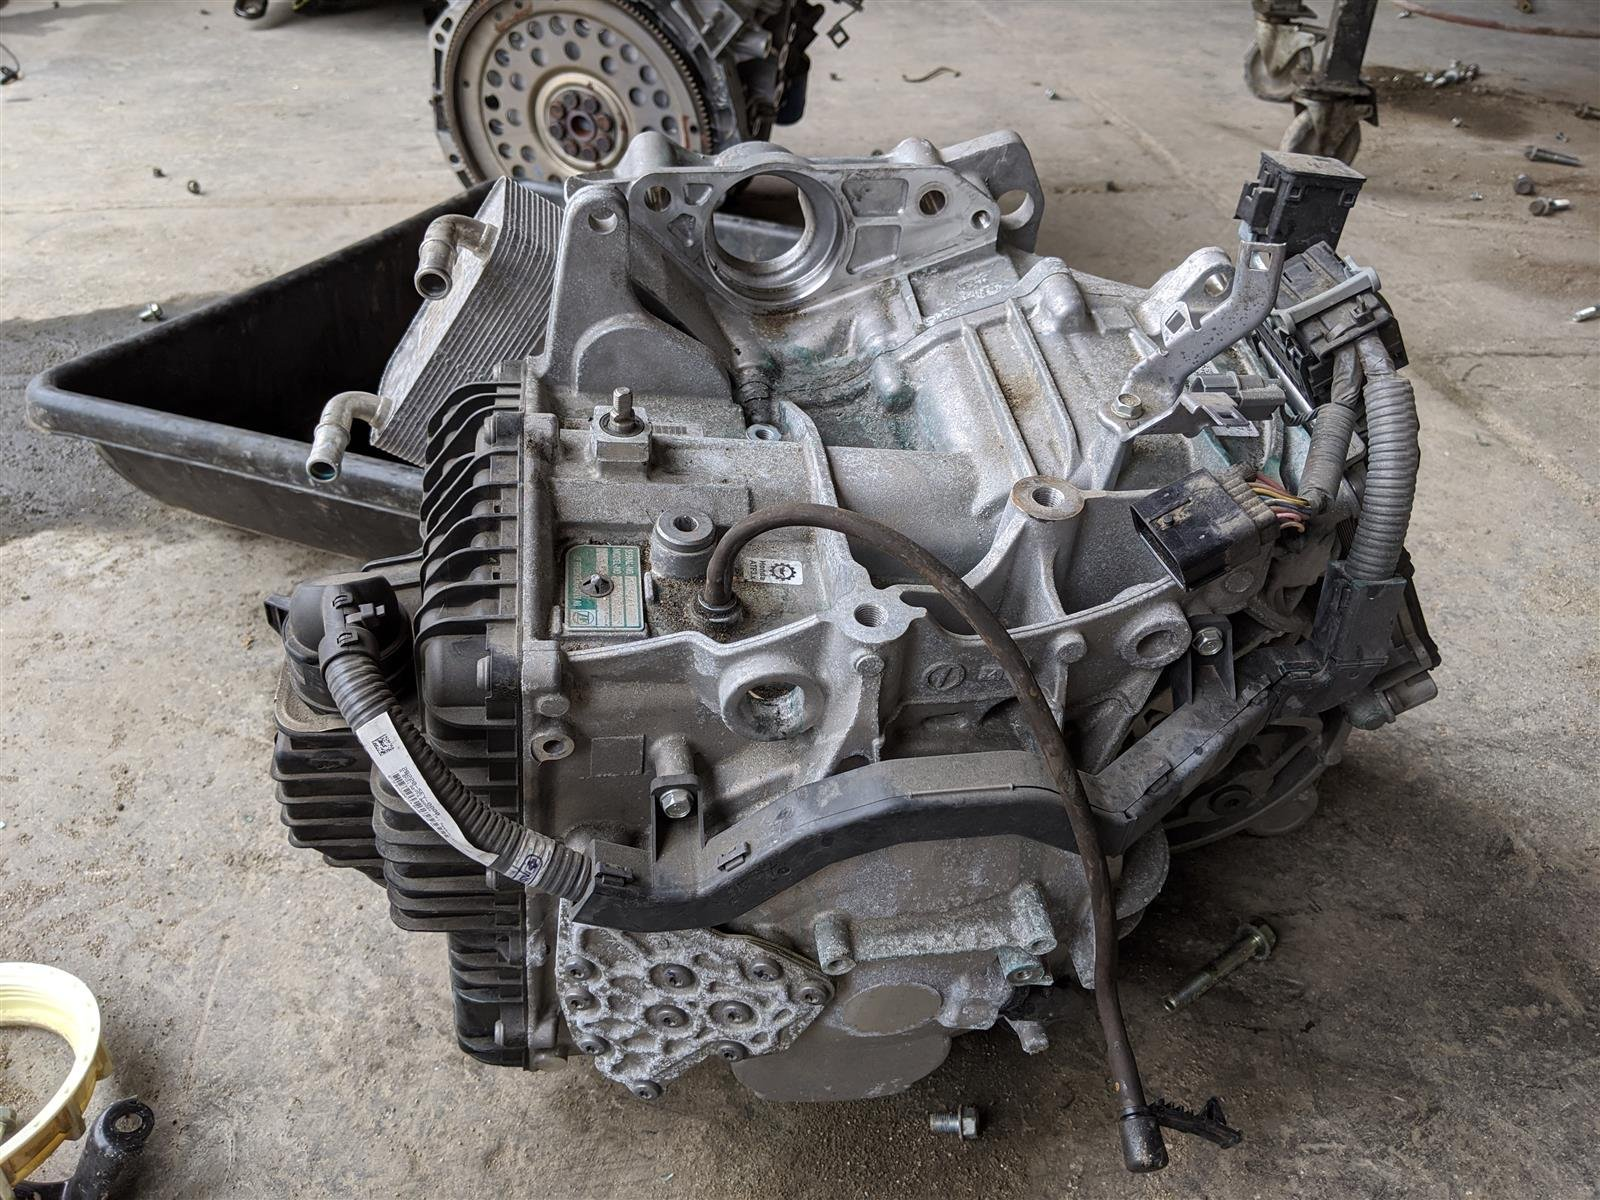 2017 Honda Pilot Awd 9 Speed Automatic Transmission Replacement